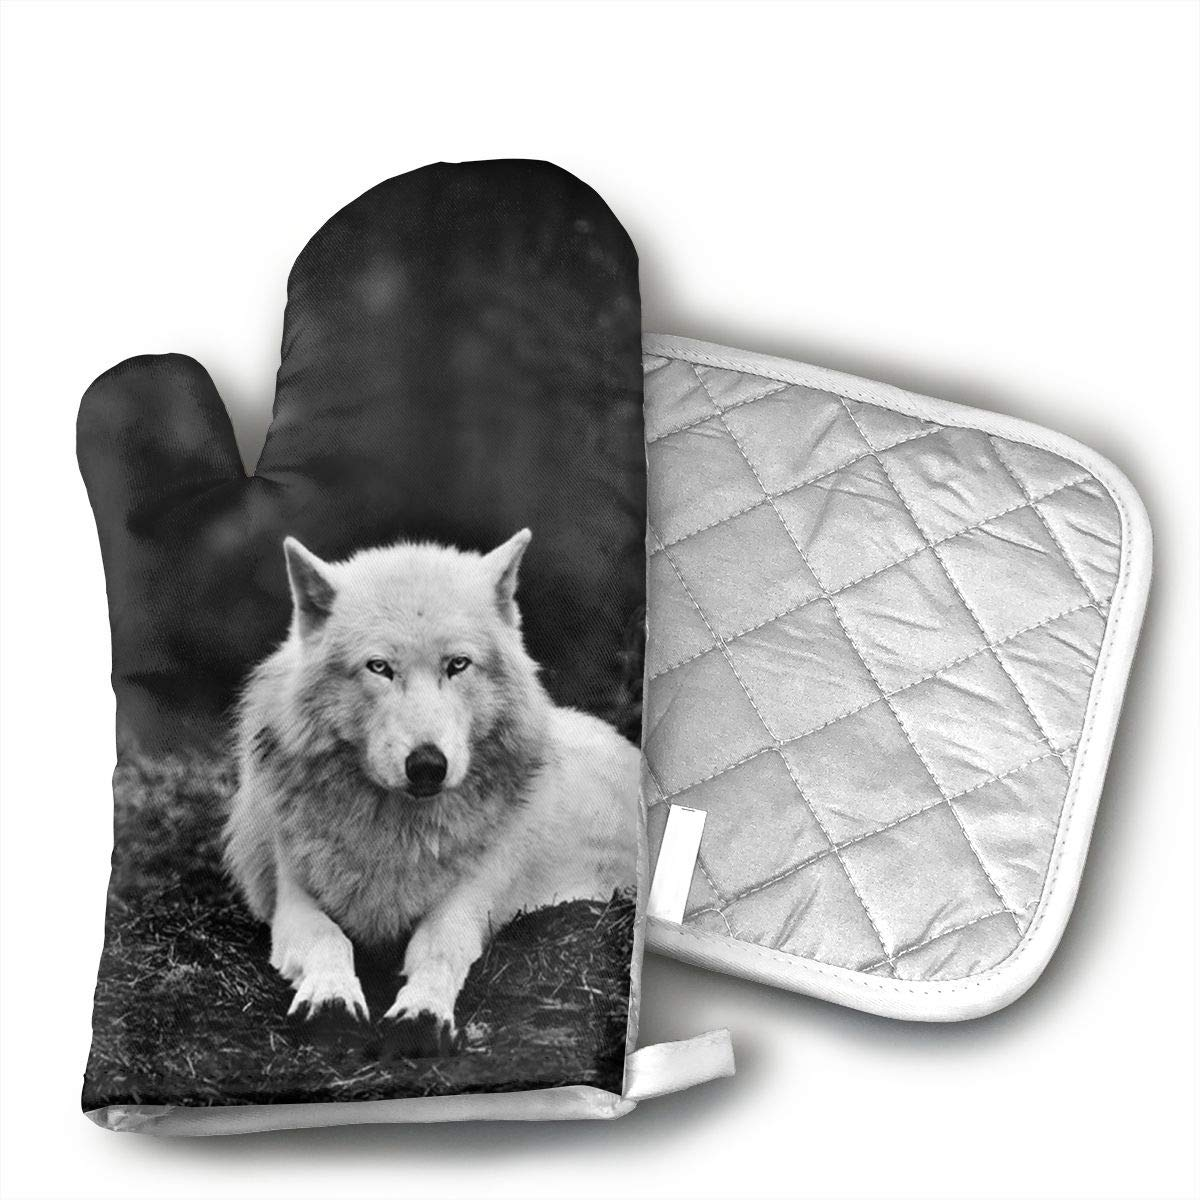 Glovesdkhh Wolf Wolves Black Oven Mitts Flame Retardant Mitts Heat Resistant to 425 Degrees F 11.8 Inch and Pot Holders